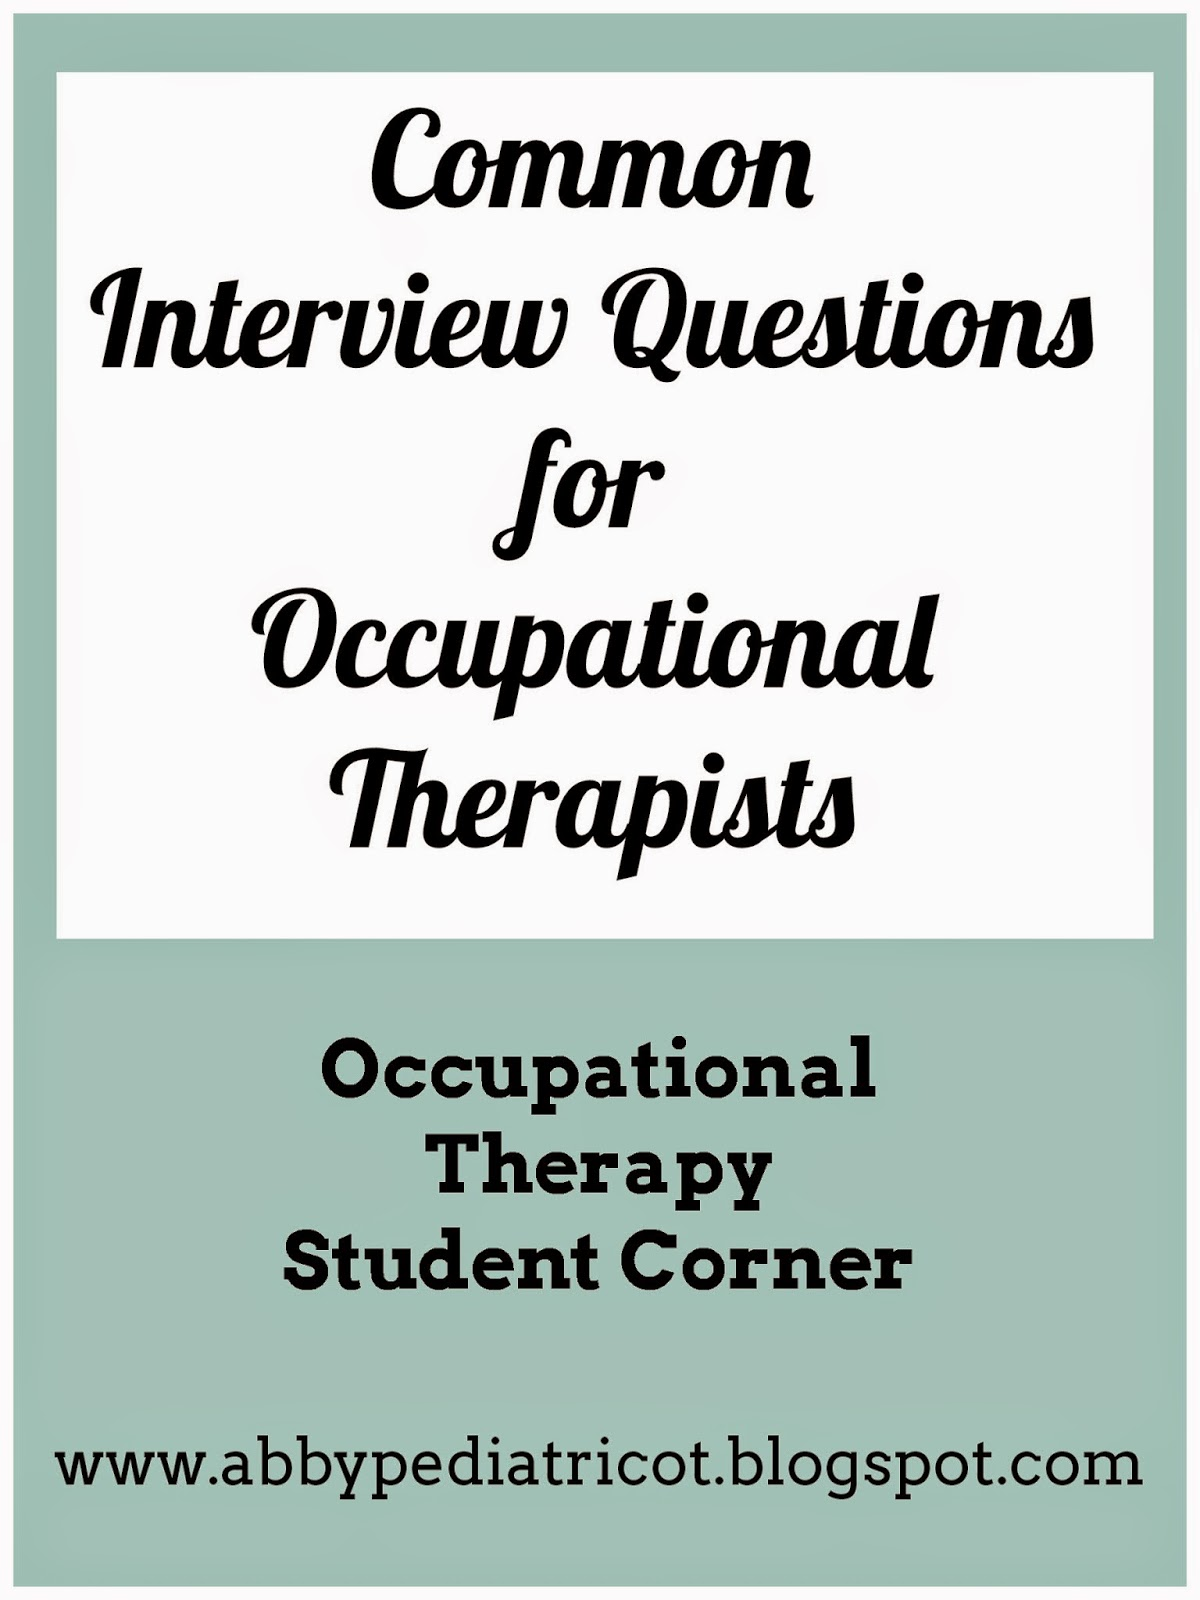 ot cafe 2015 common interview questions for occupational therapy jobs